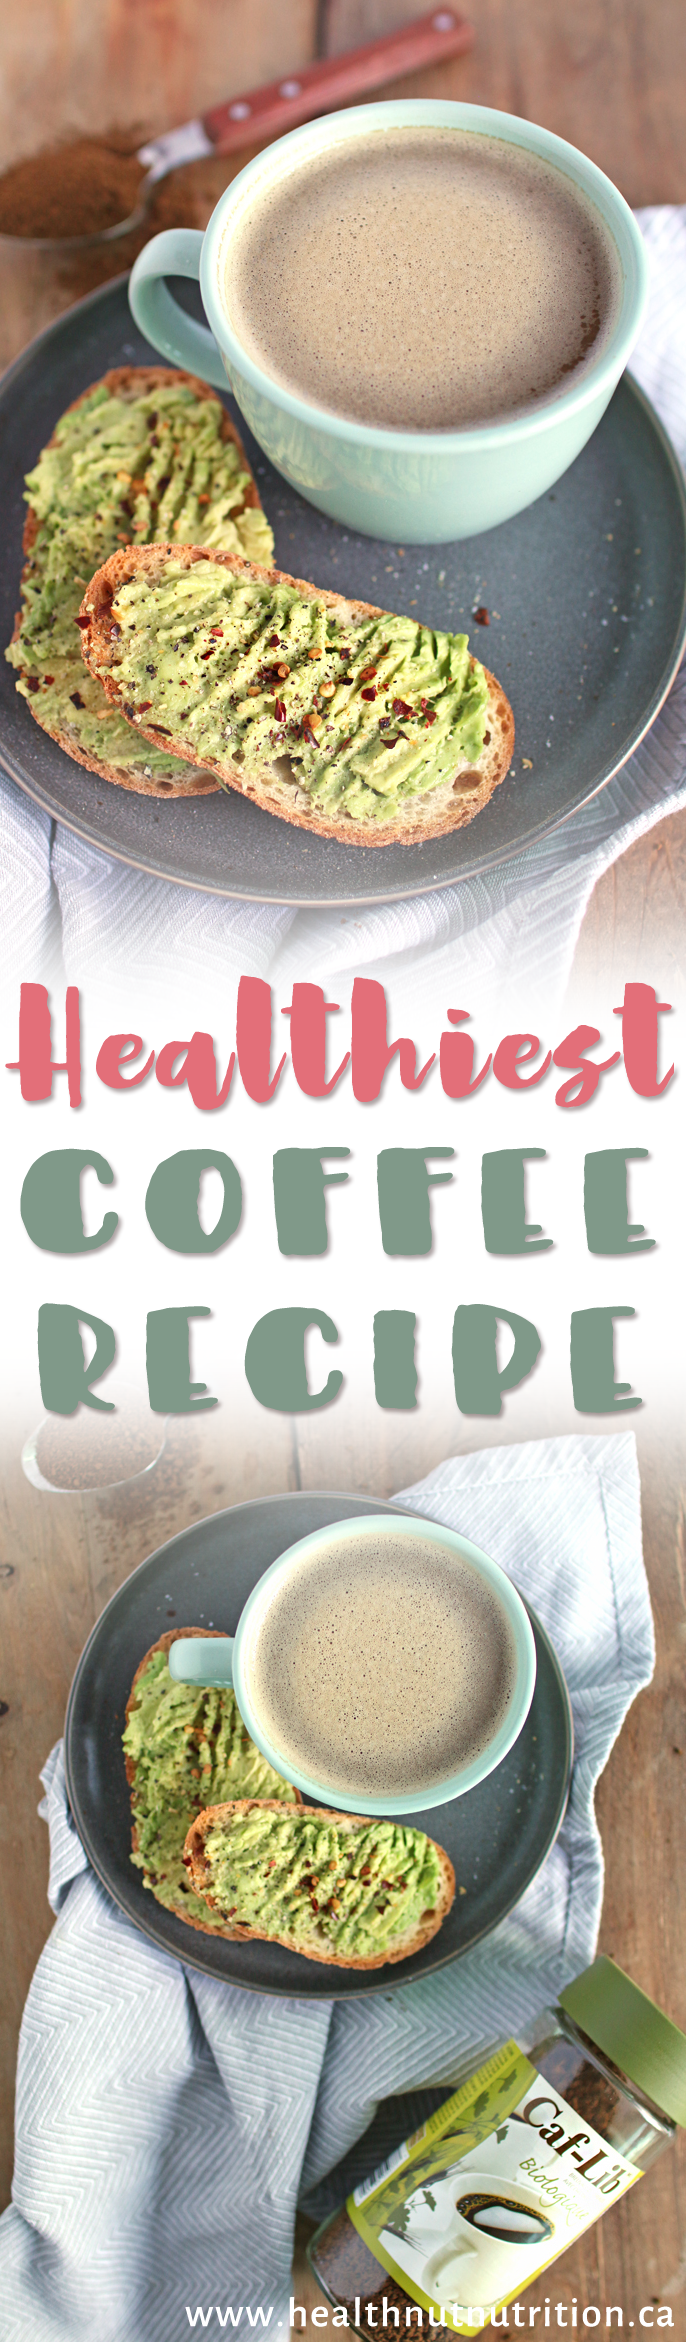 "The best morning ""coffee"" you will ever drink! #ad"